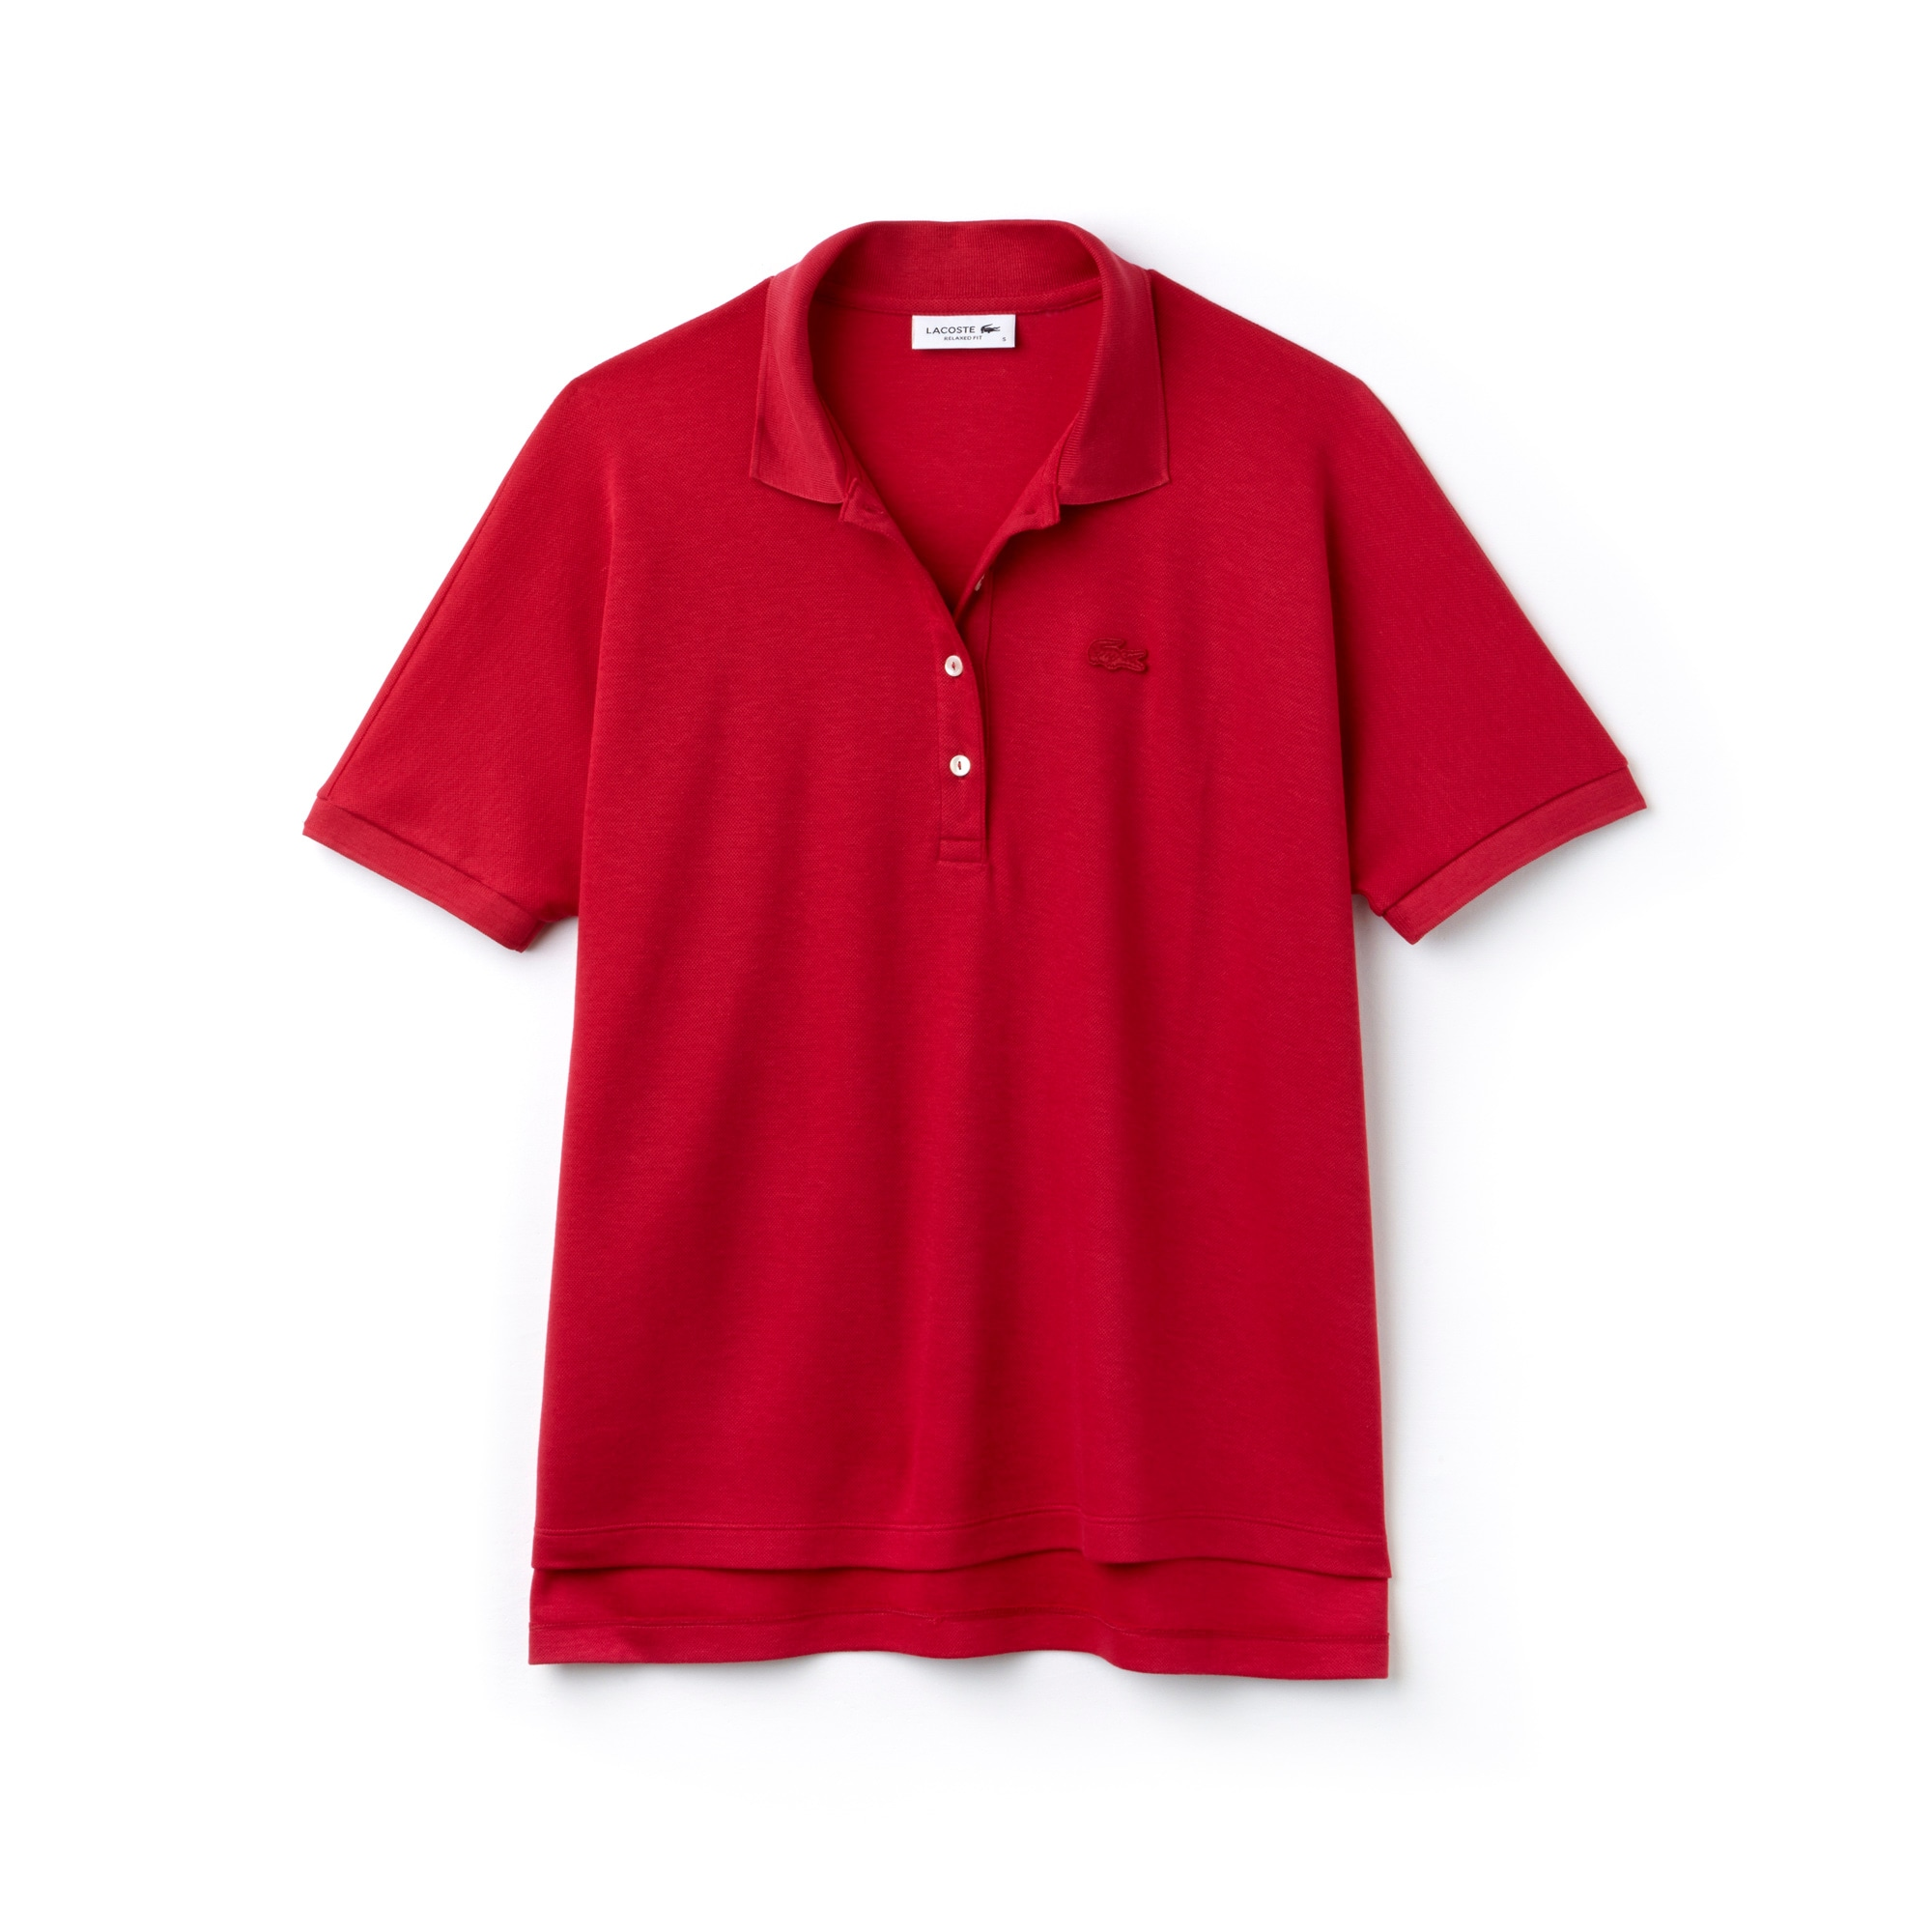 Women's Modern Fit Flowing Stretch Cotton Piqué Polo